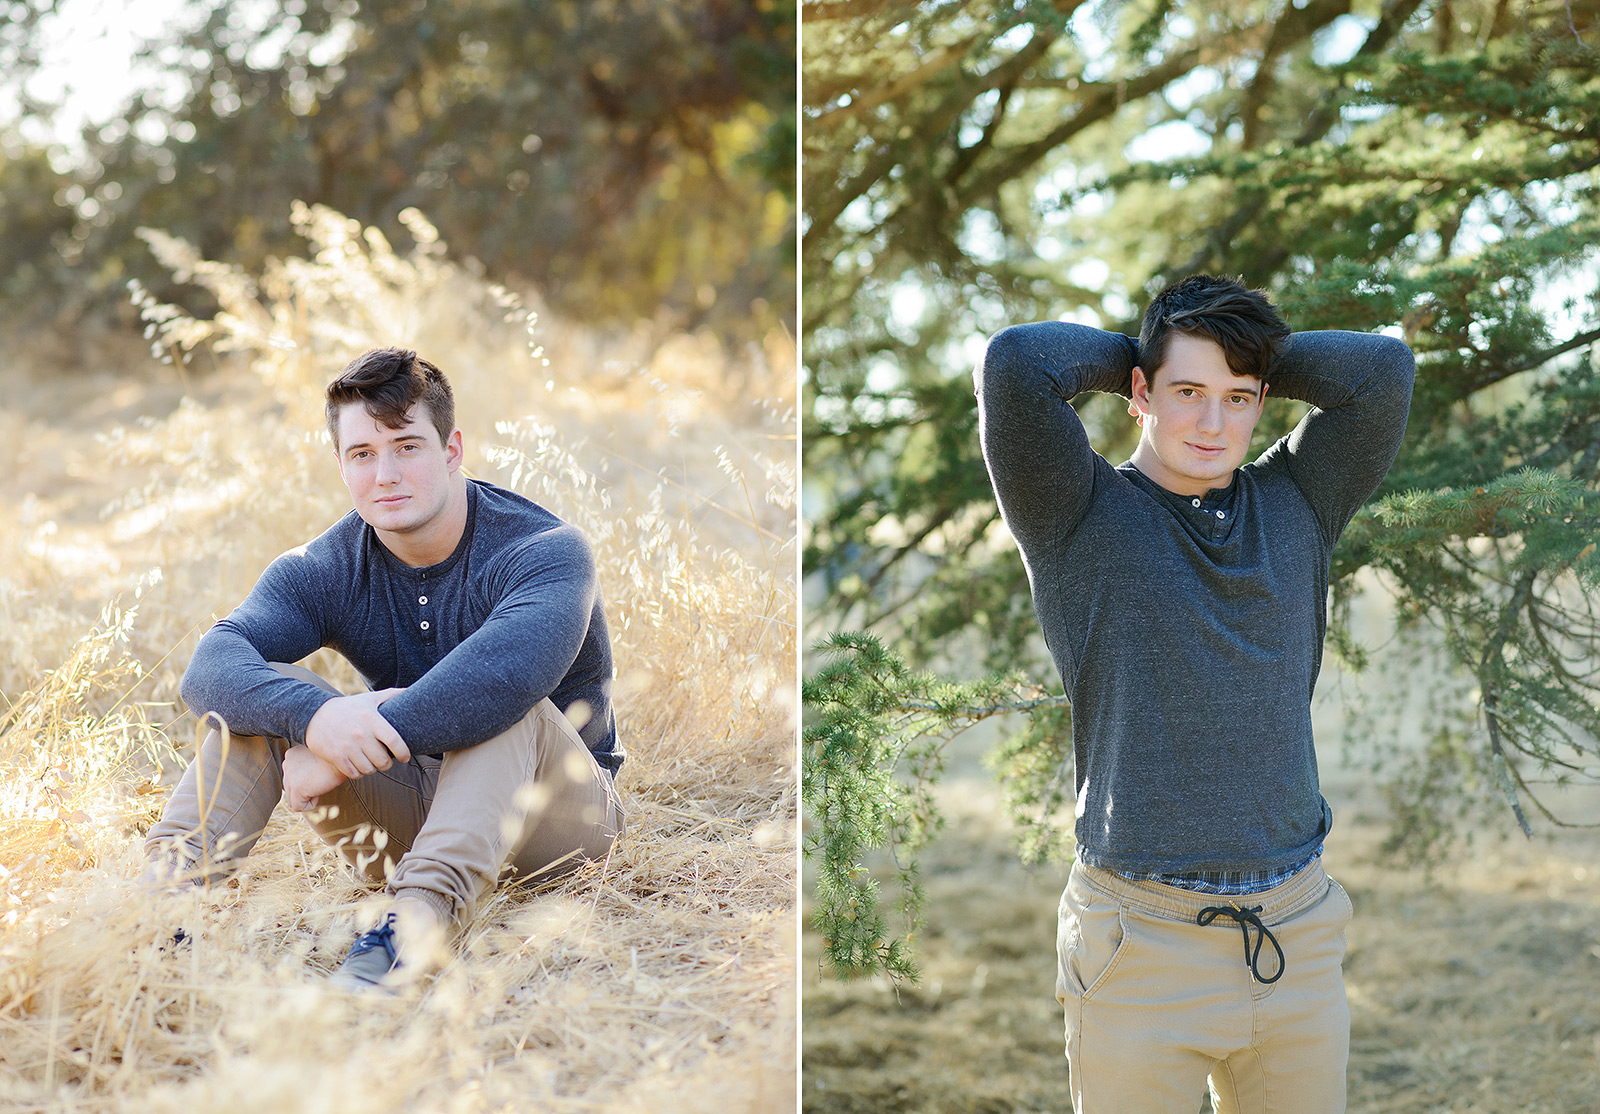 Male teenager posing for senior portraits on yellow grass and trees